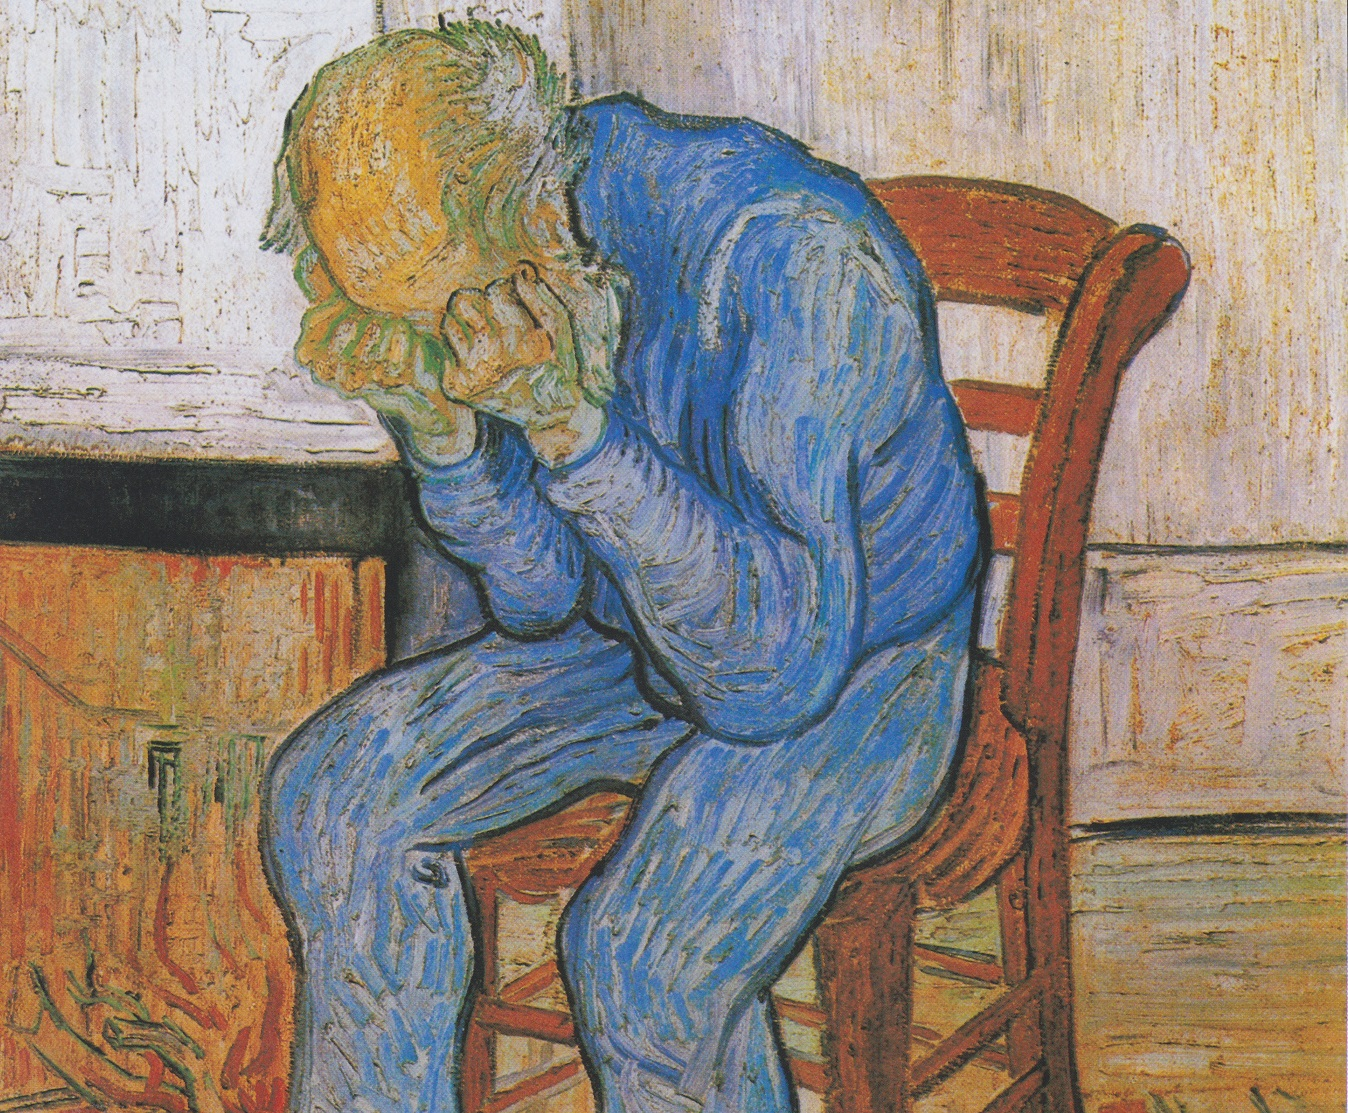 painting genius vincent van gogh suffers bipolar disorder 'the connection between genius and mental illness is paradoxically both   vincent van gogh was a known madman it was never in question to  to  whether or not he suffered from lead poisoning by biting on paint chips.